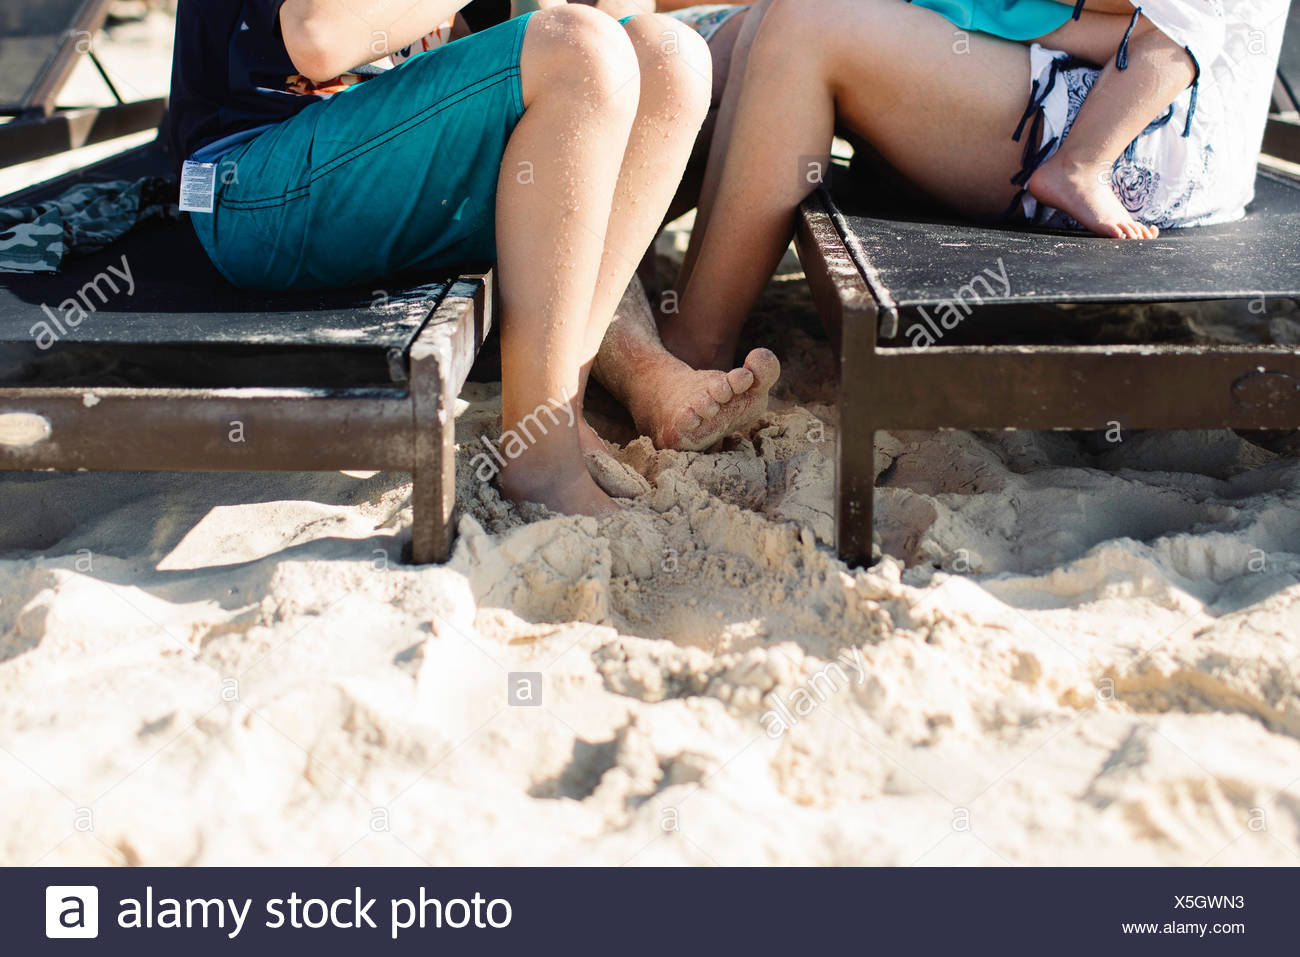 Mother and son sitting on sun loungers, mother holding young daughter, low section Stock Photo